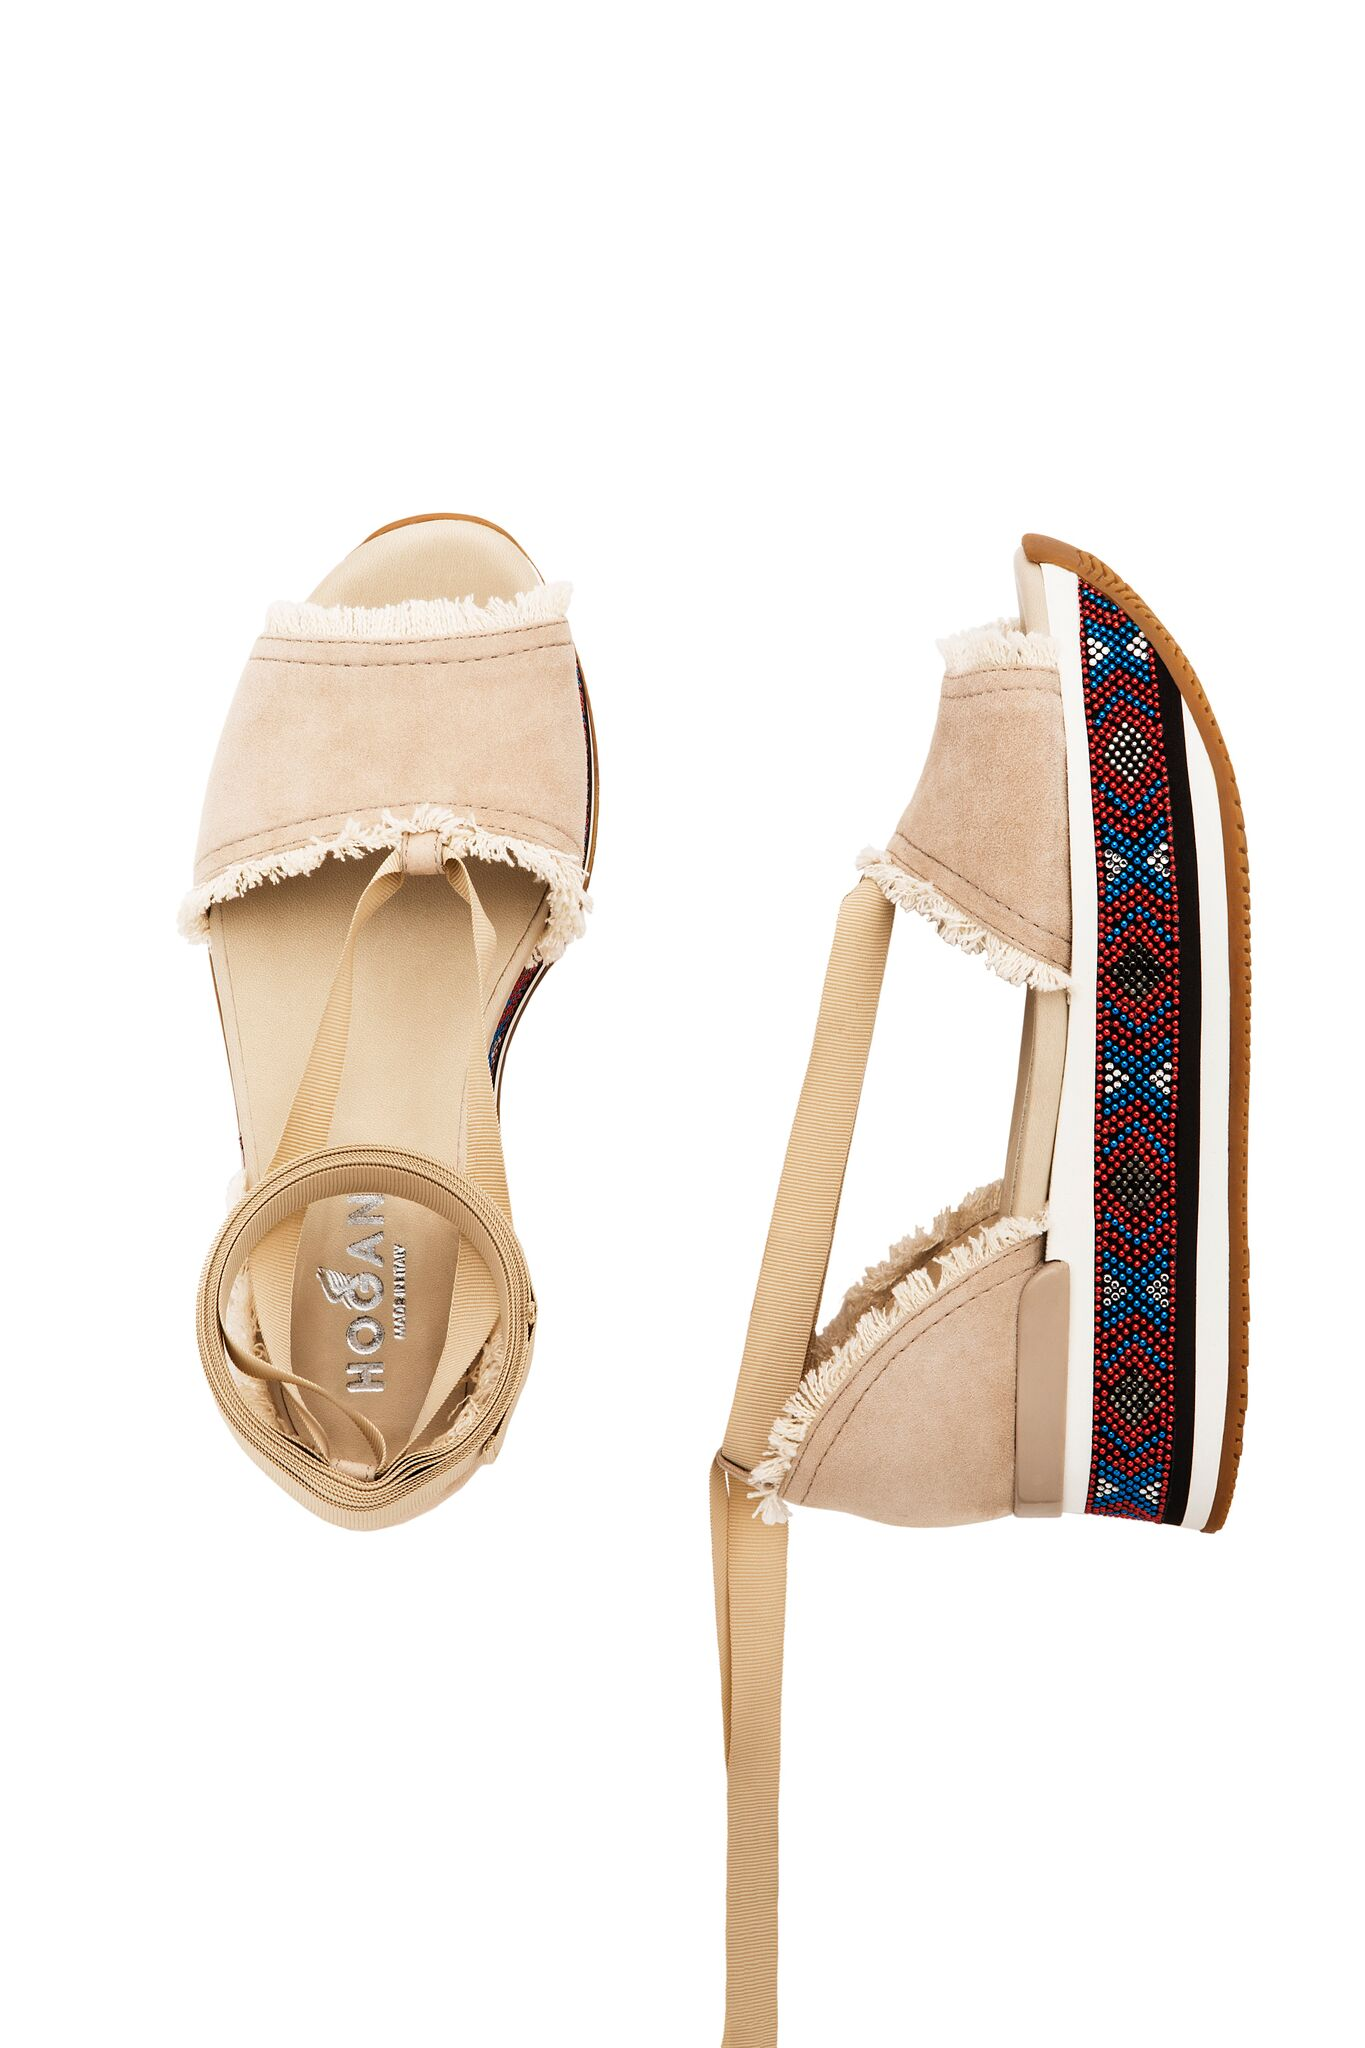 Craquage-chaussures-luxe